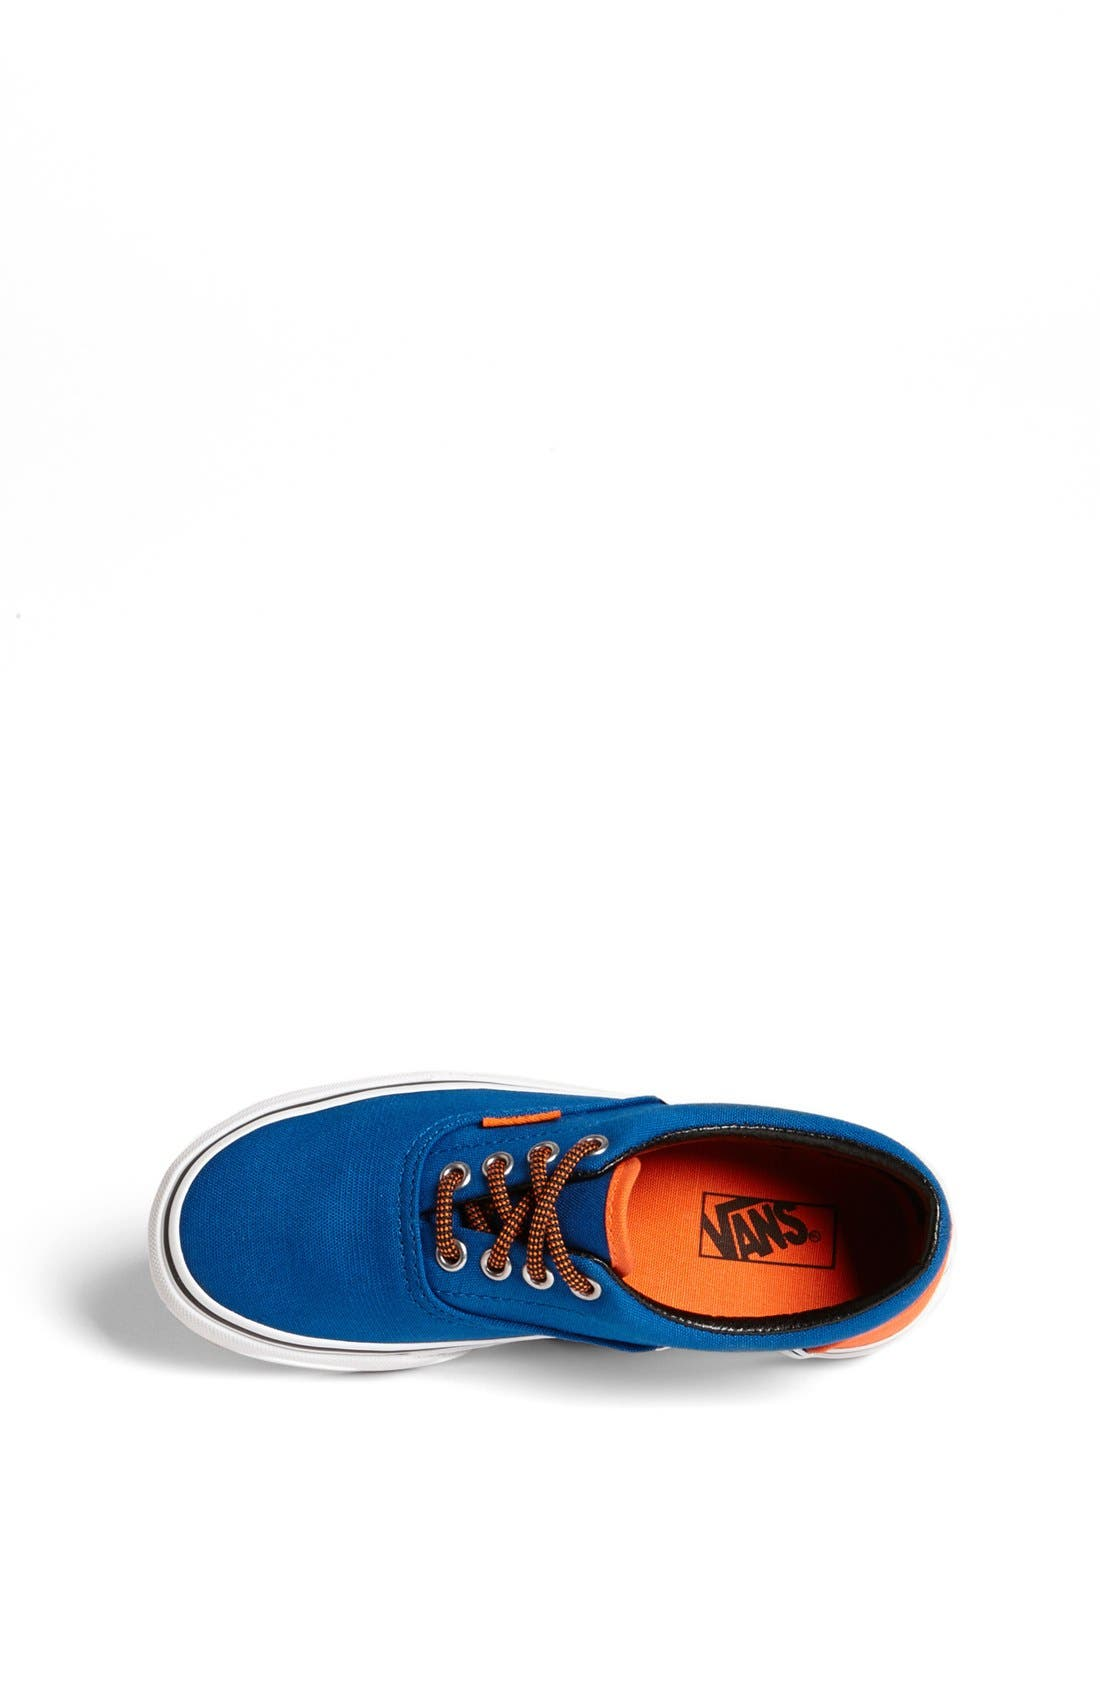 Alternate Image 3  - Vans 'Era - Heel Pop' Sneaker (Toddler, Little Kid & Big Kid)